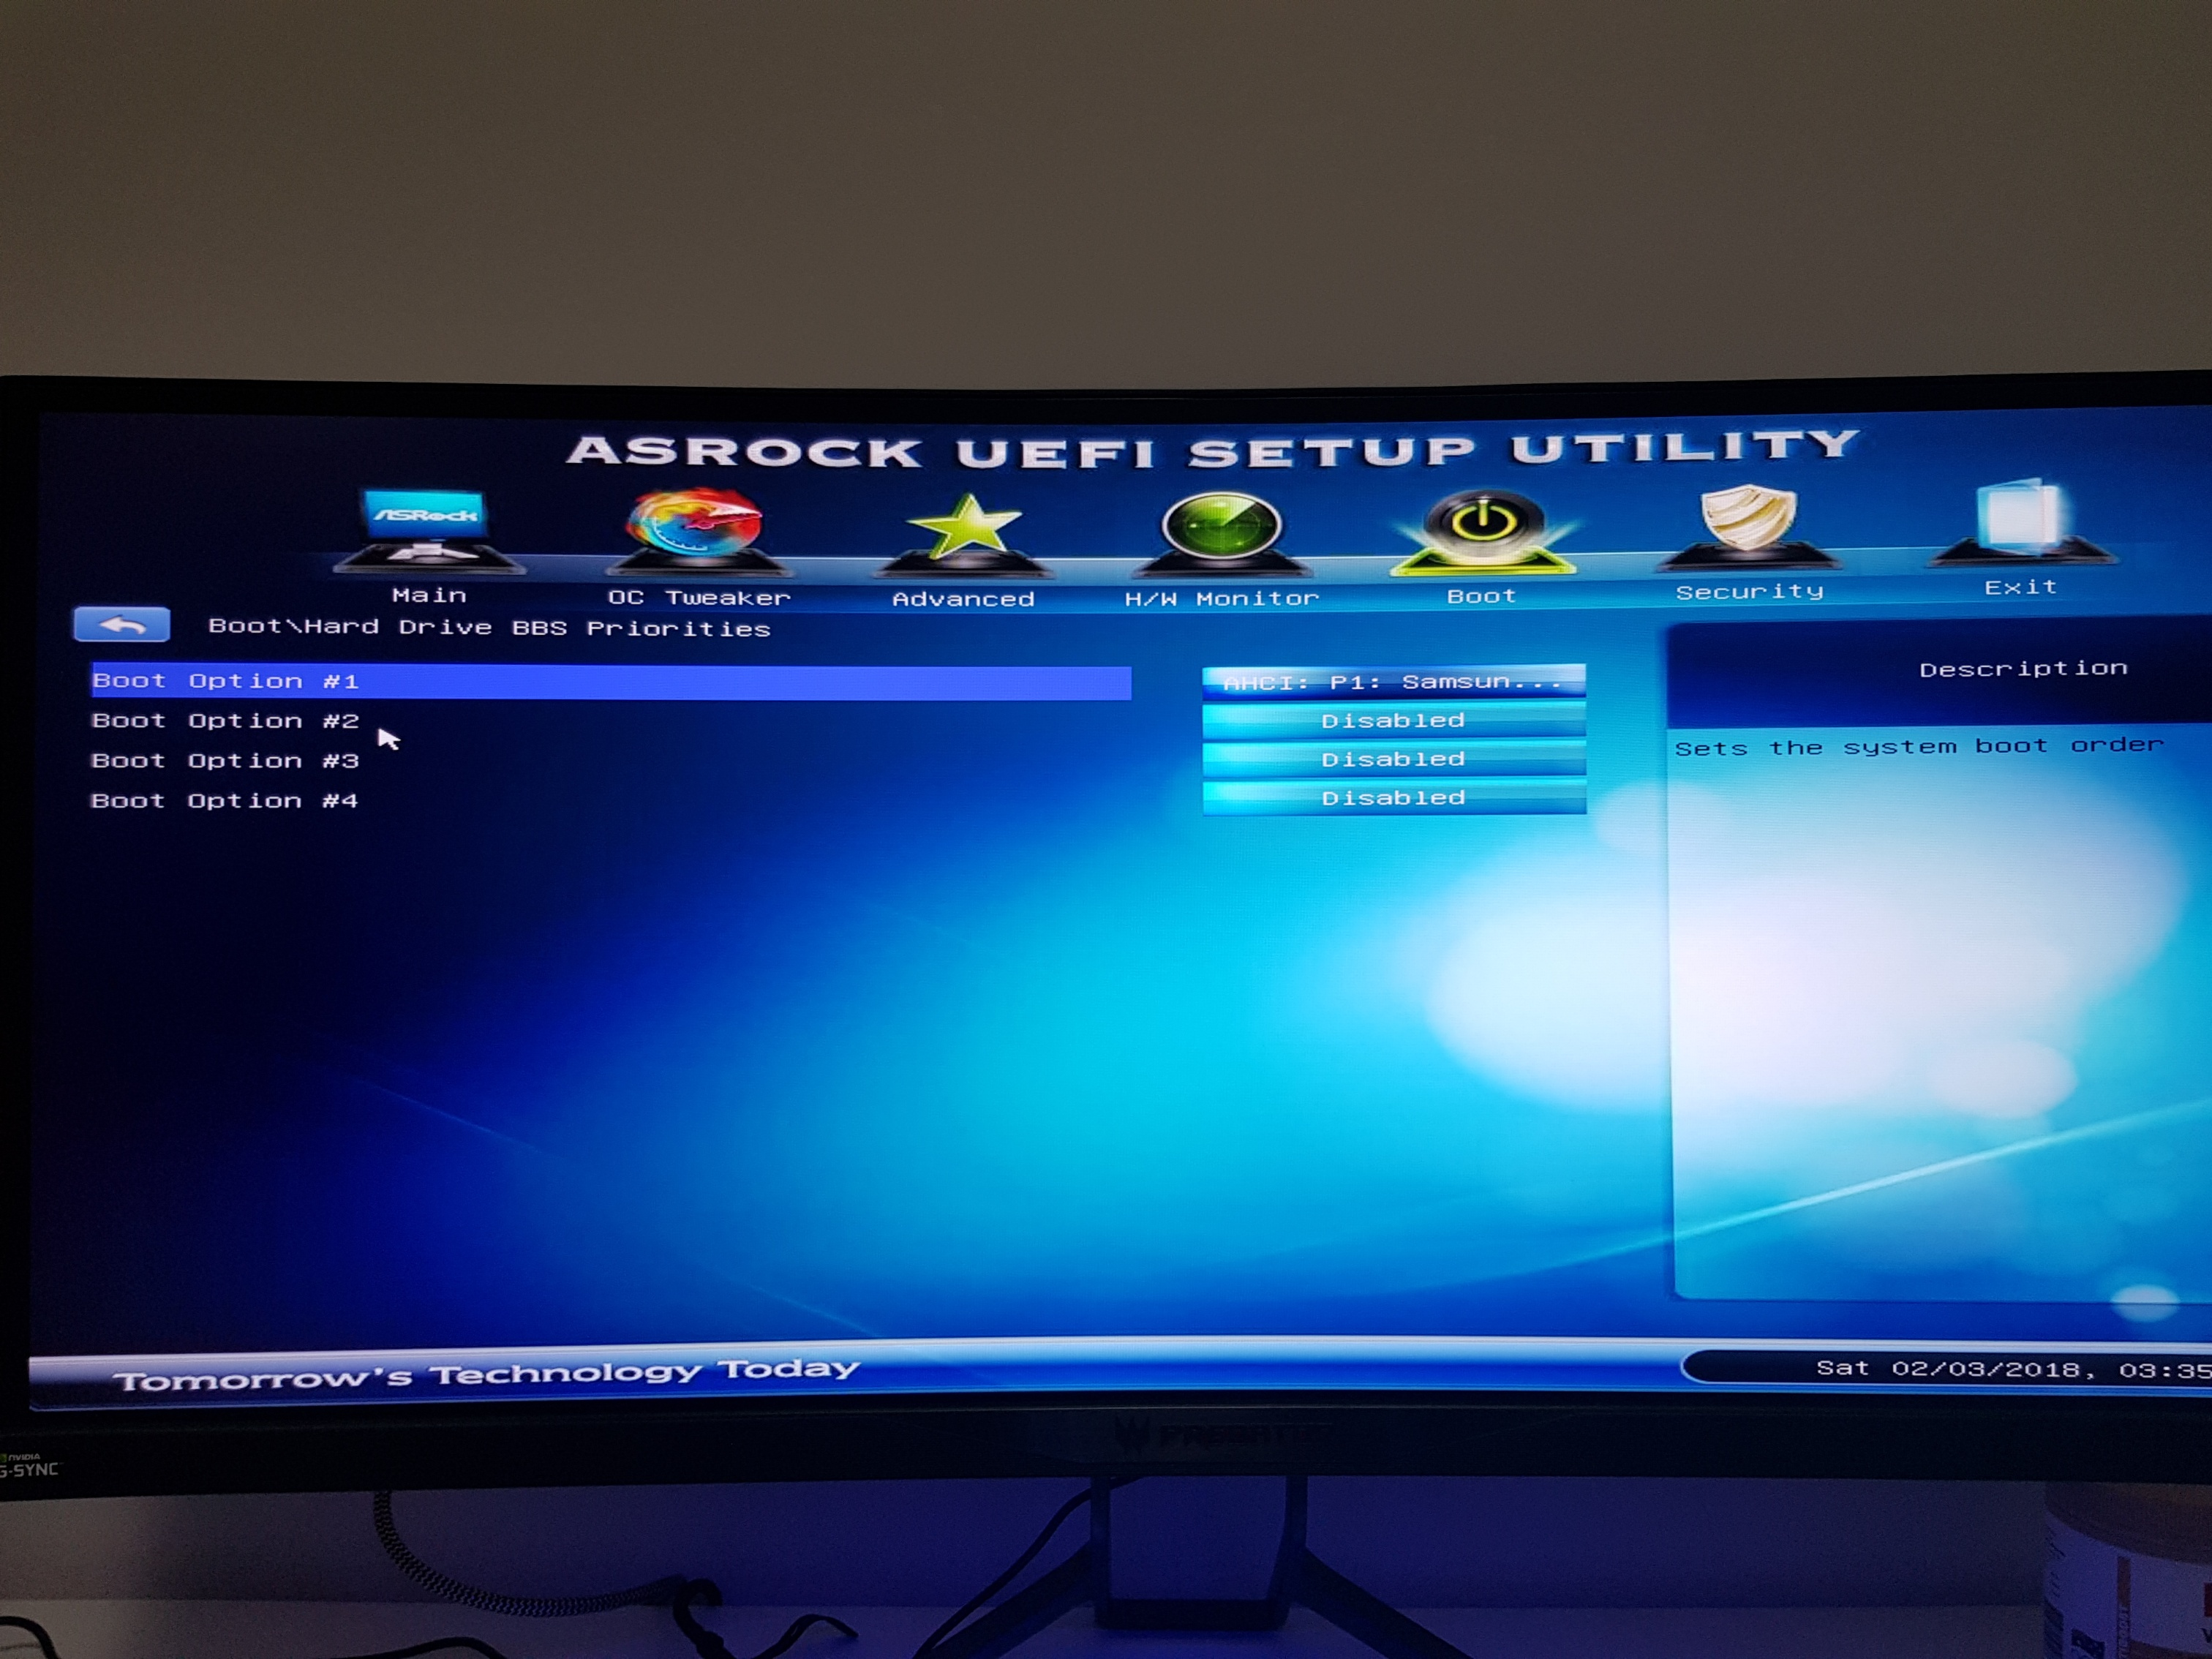 ASROCK BIOS Boot Screen loading 3x before getting into